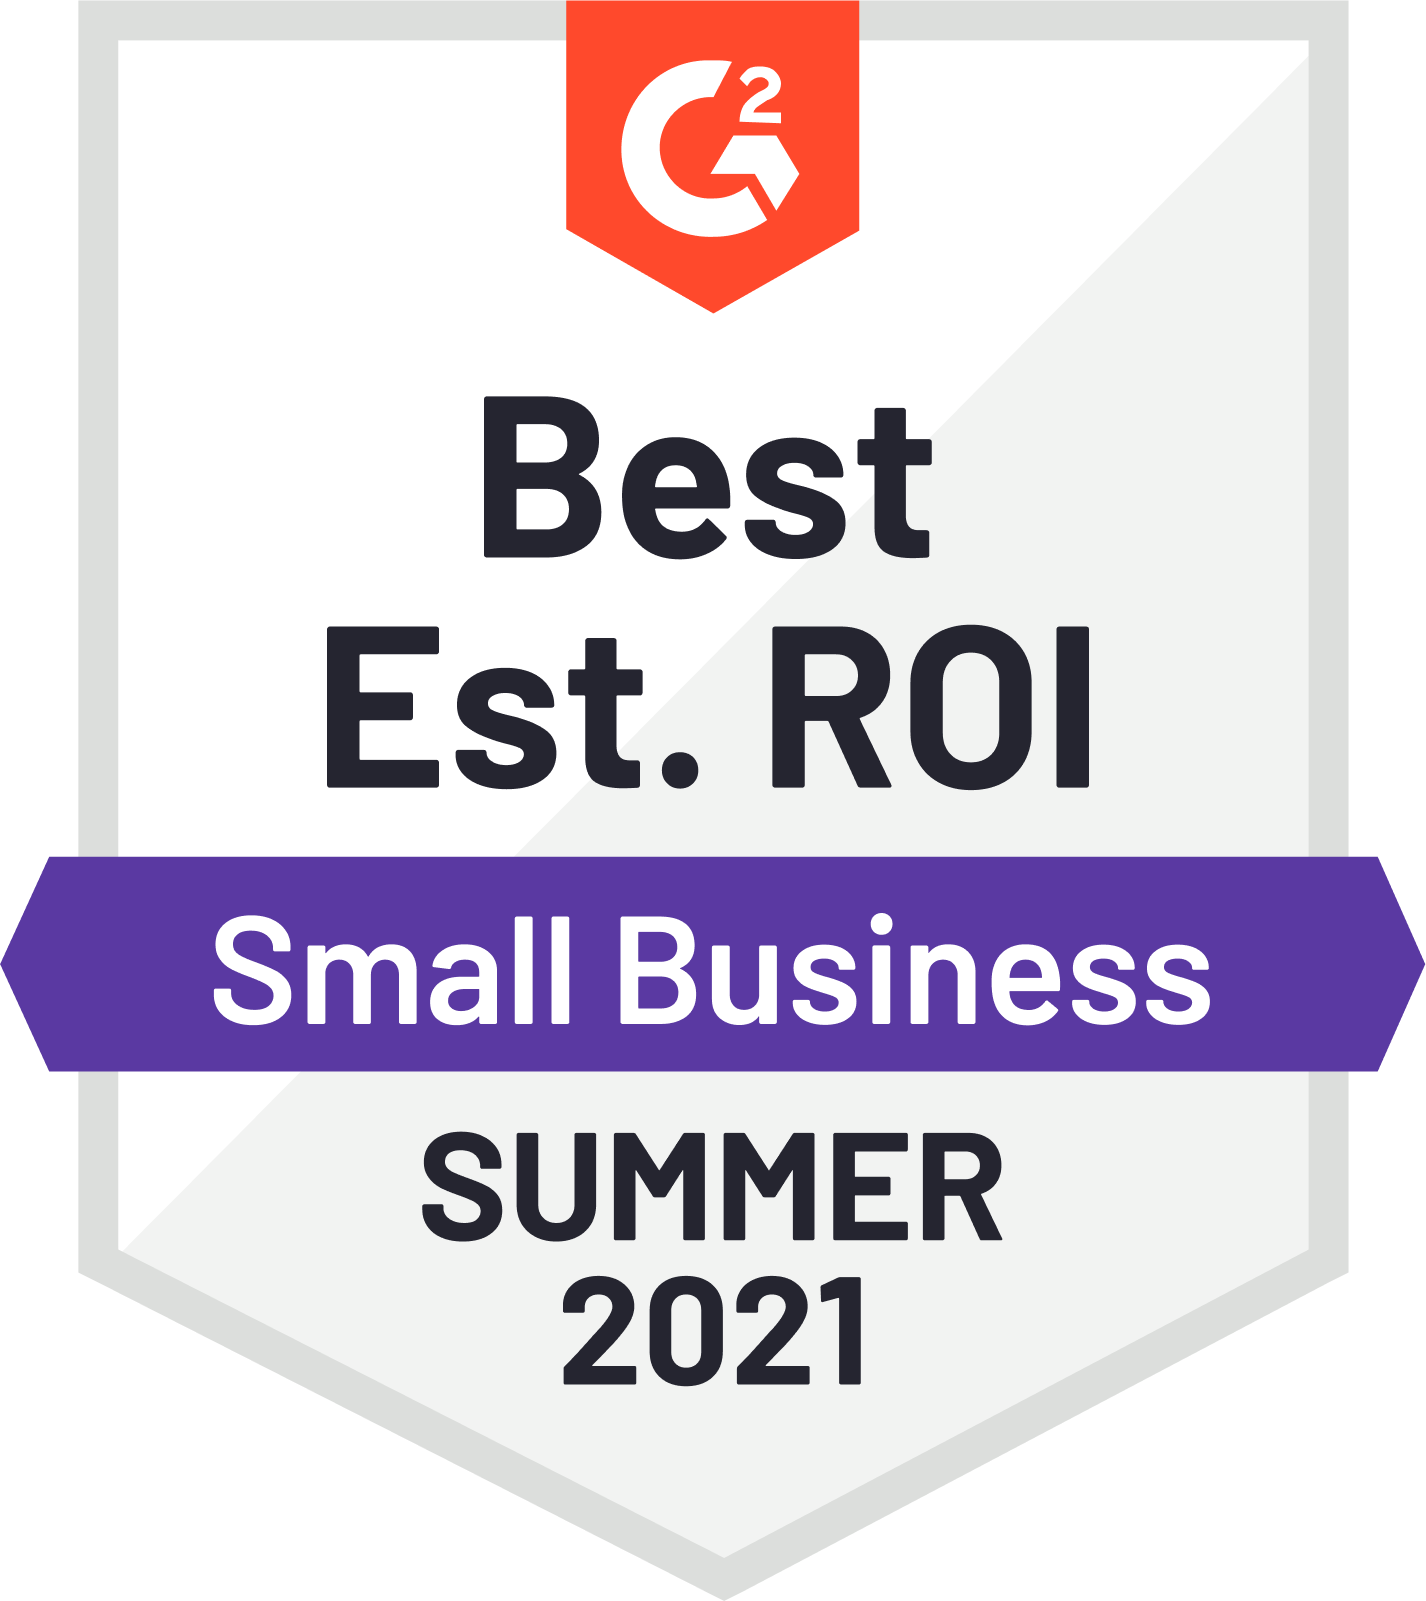 Best Estimated ROI - Small Business